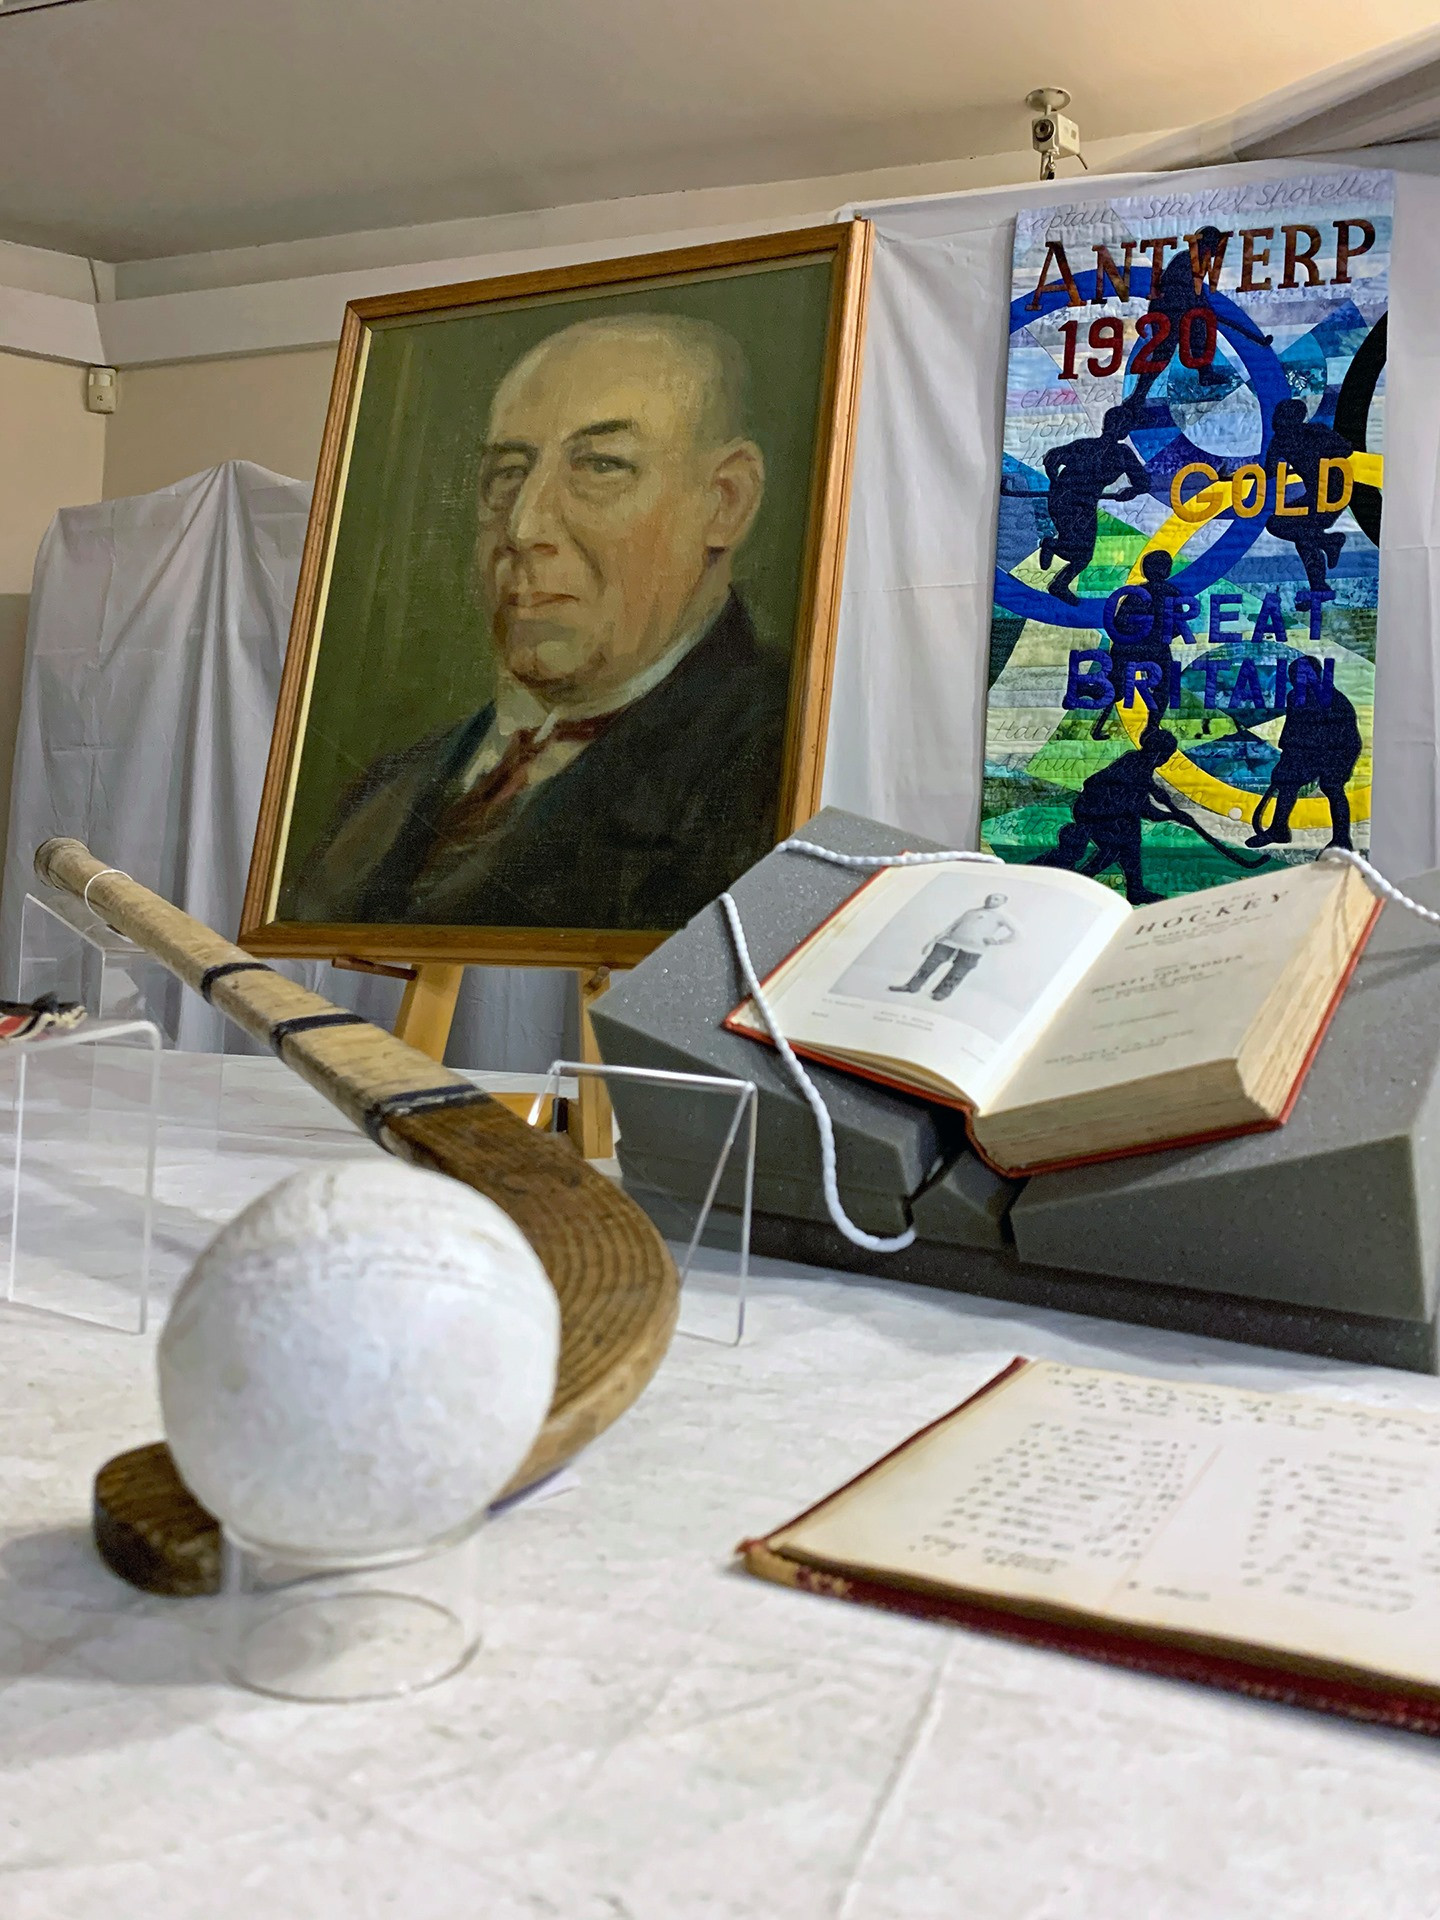 A collection of other Olympic memorabilia was loaned to The Hockey Museum by Harry Haslam's family to mark the centenary of Britain's Olympic gold medal at Antwerp 1920 ©The Hockey Museum